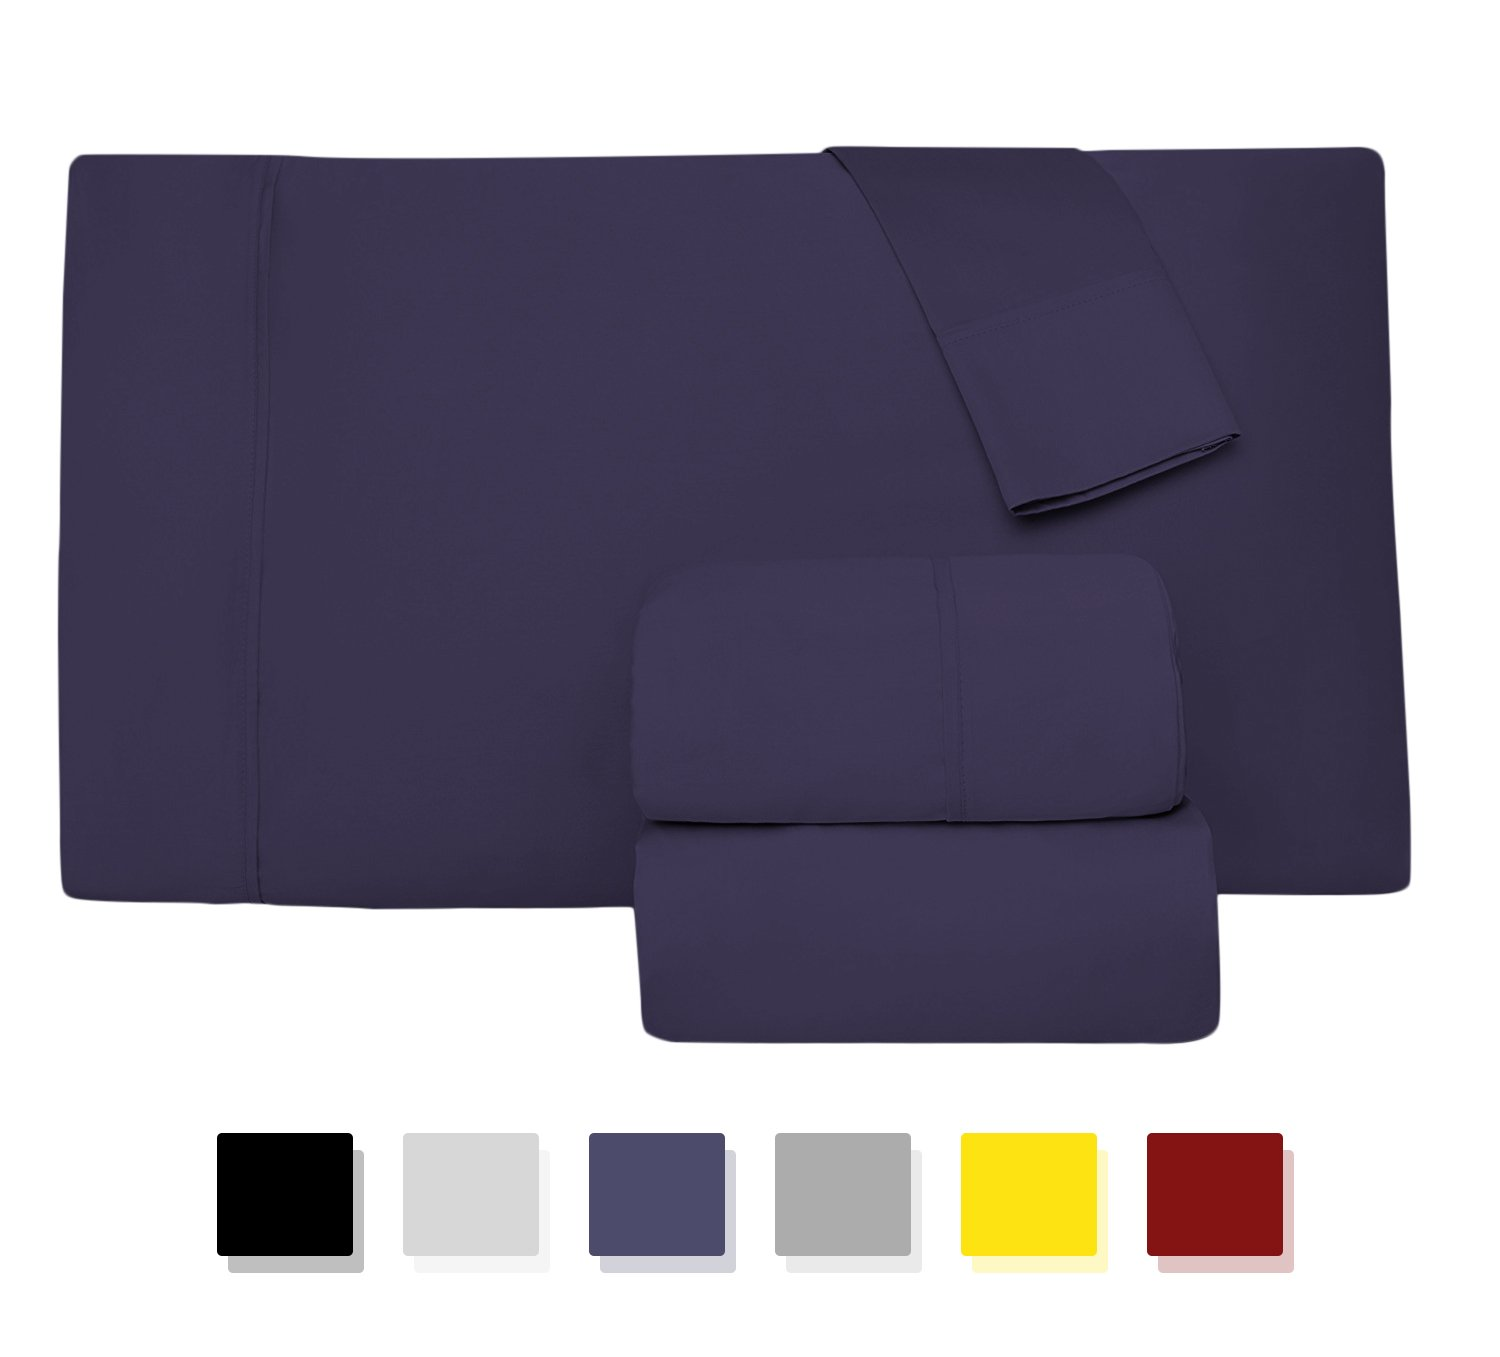 Thread Spread Hotel Collection 600 Thread Count Egyptian Cotton Sateen 4 Piece Sheet Set COMIN18JU046573 King Pillow Case Pair, White